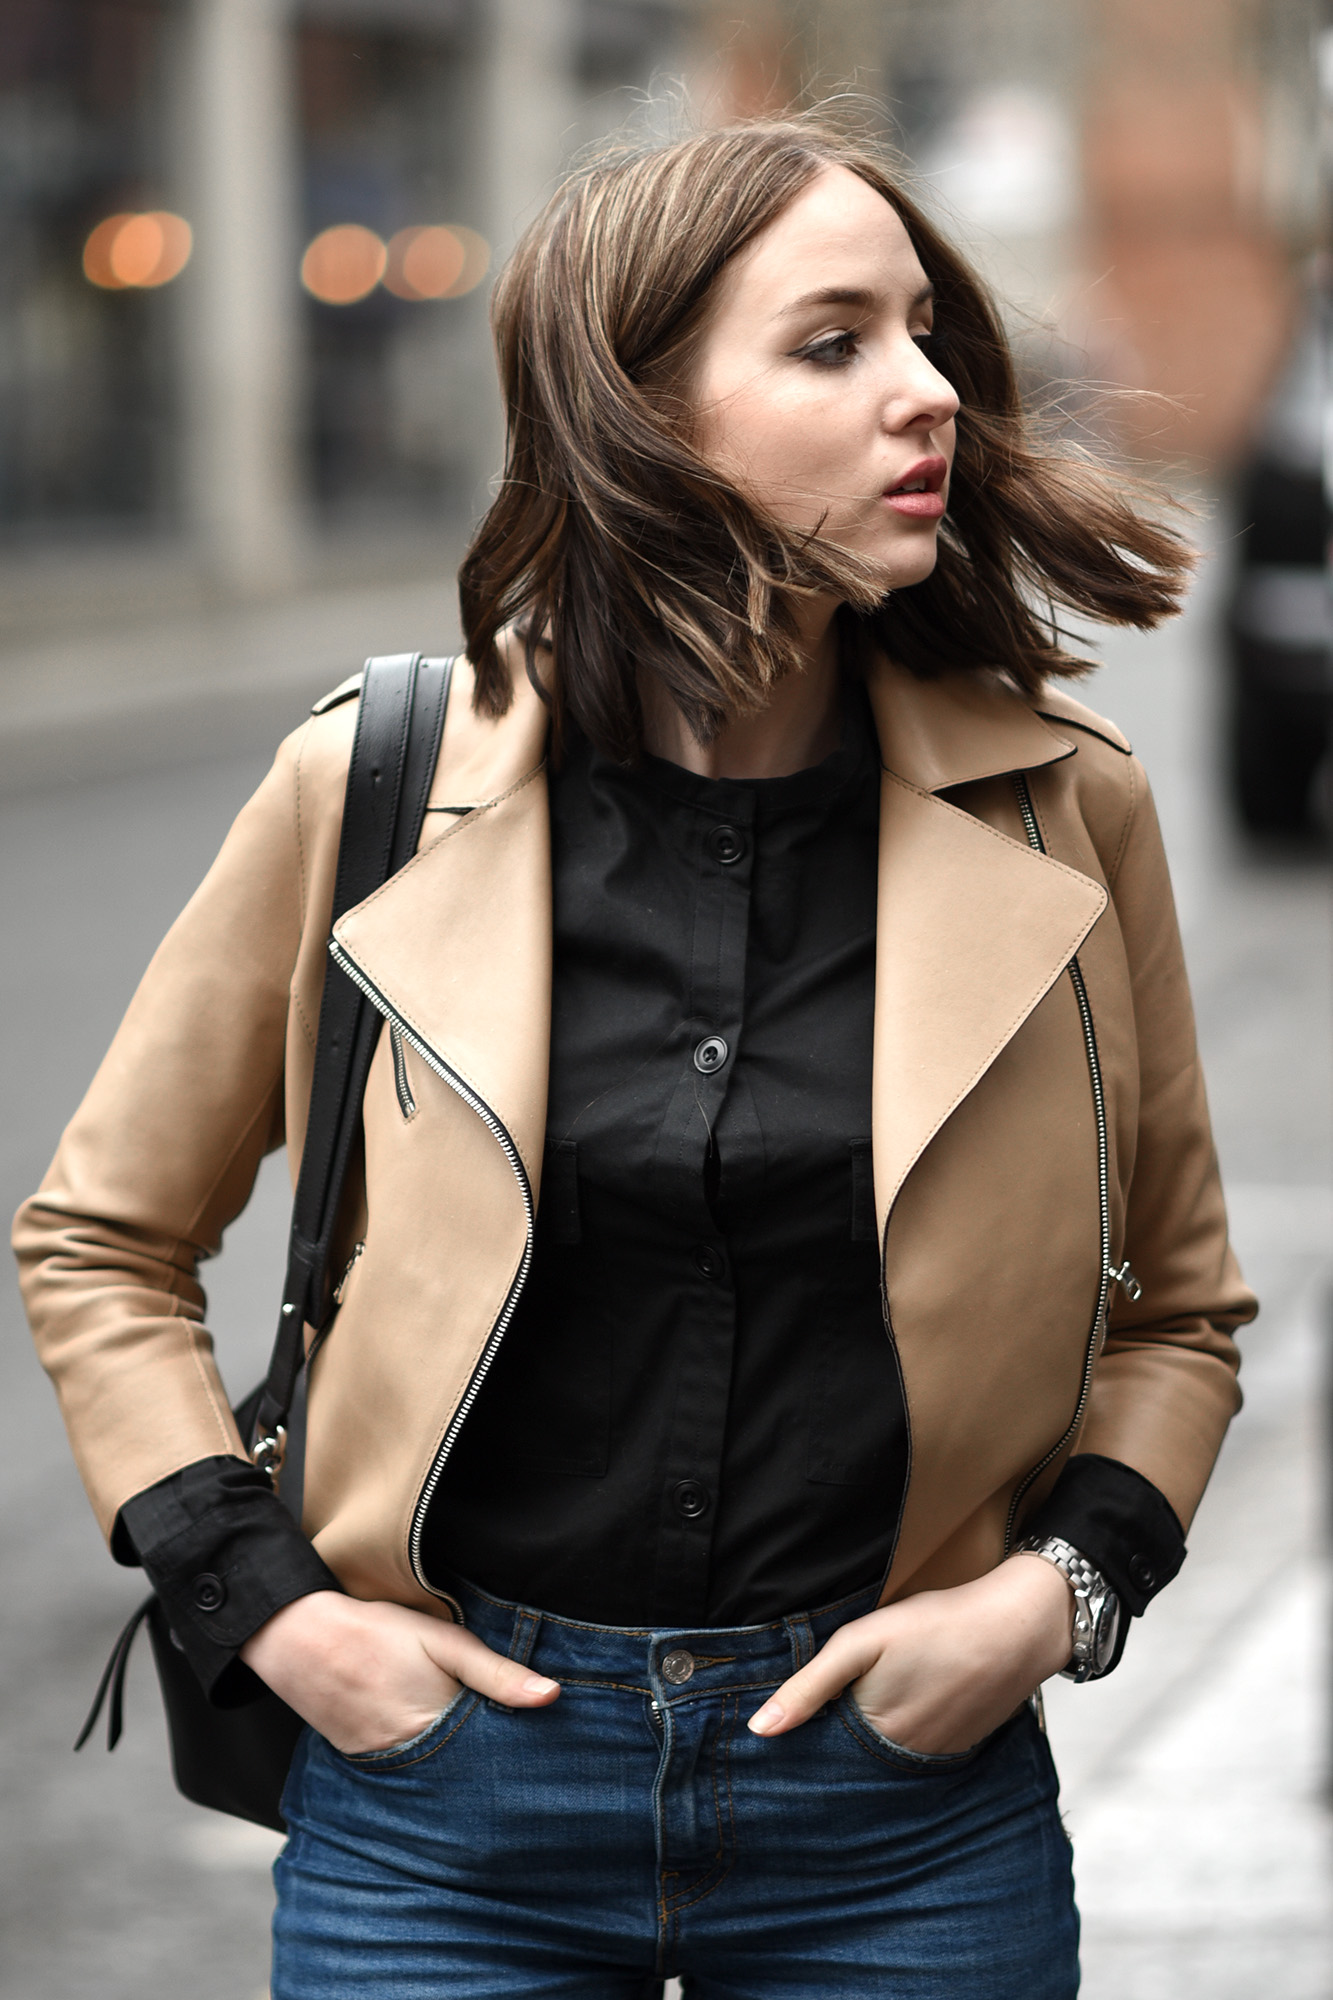 Cream Leather Jacket Outfit